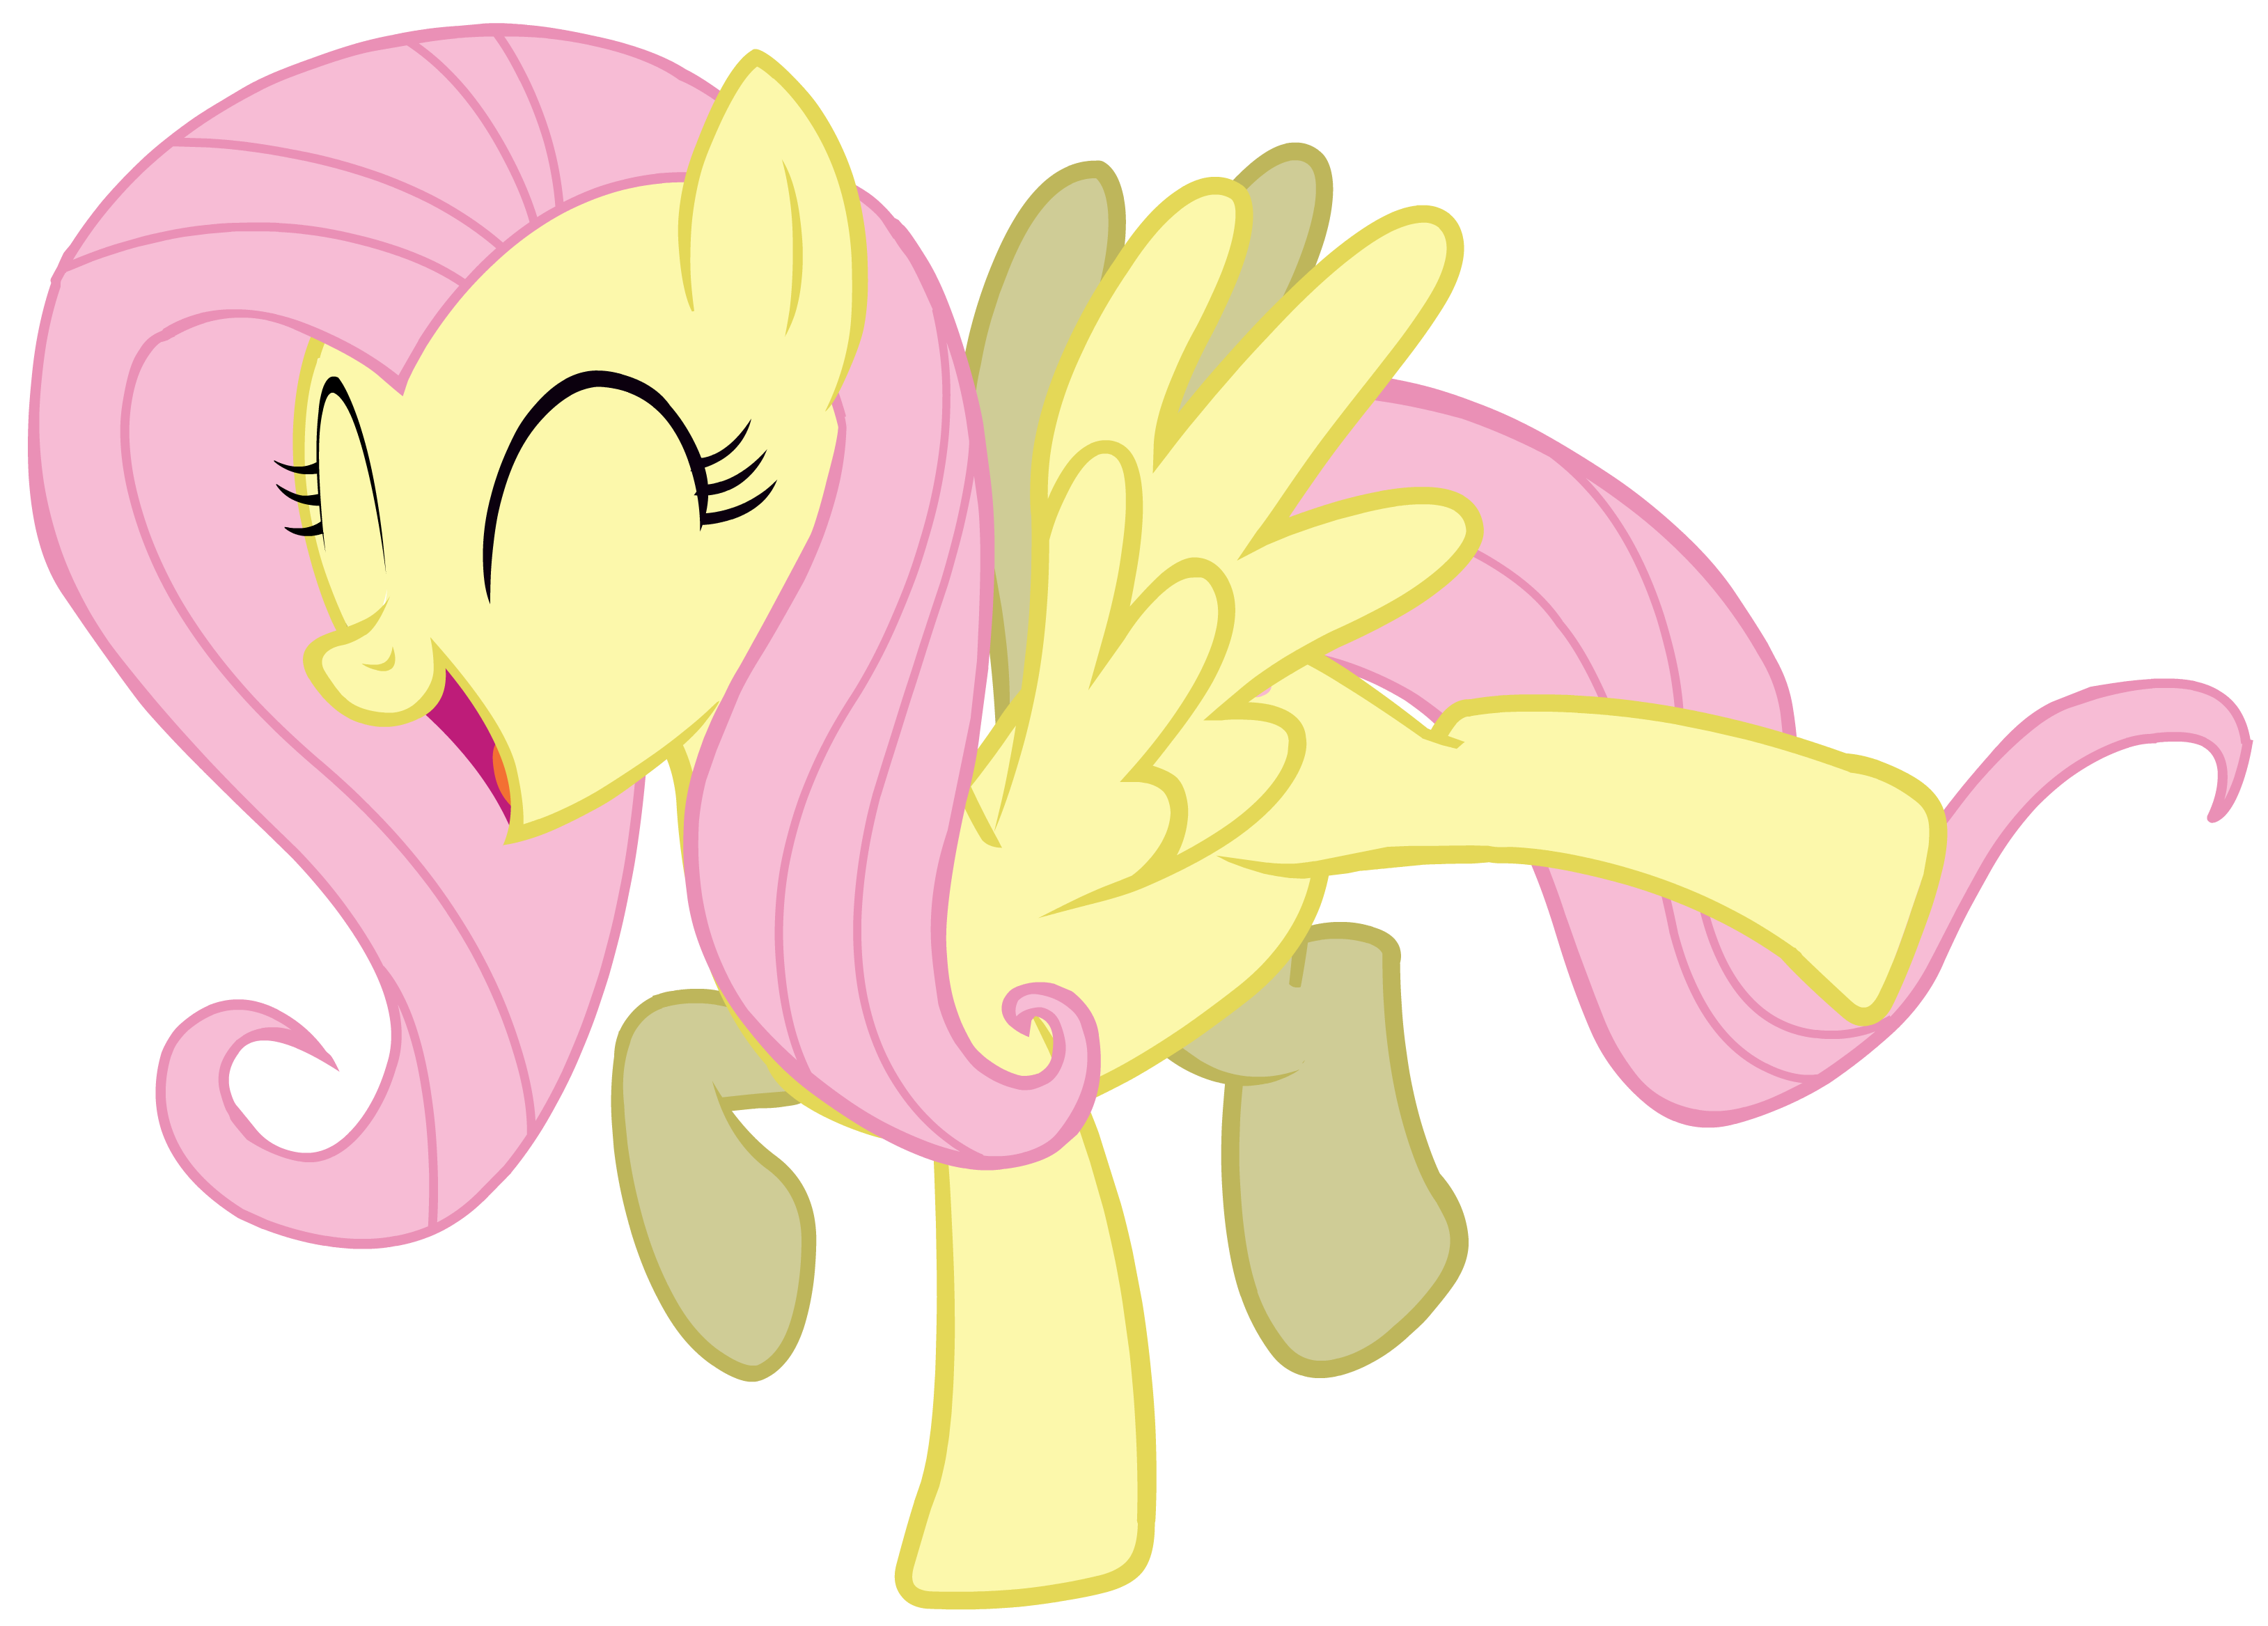 Image pinkie pie and fluttershy flying png my little pony fan - My Little Pony Happy Fluttershy Pinkie Pie Party Time Vector